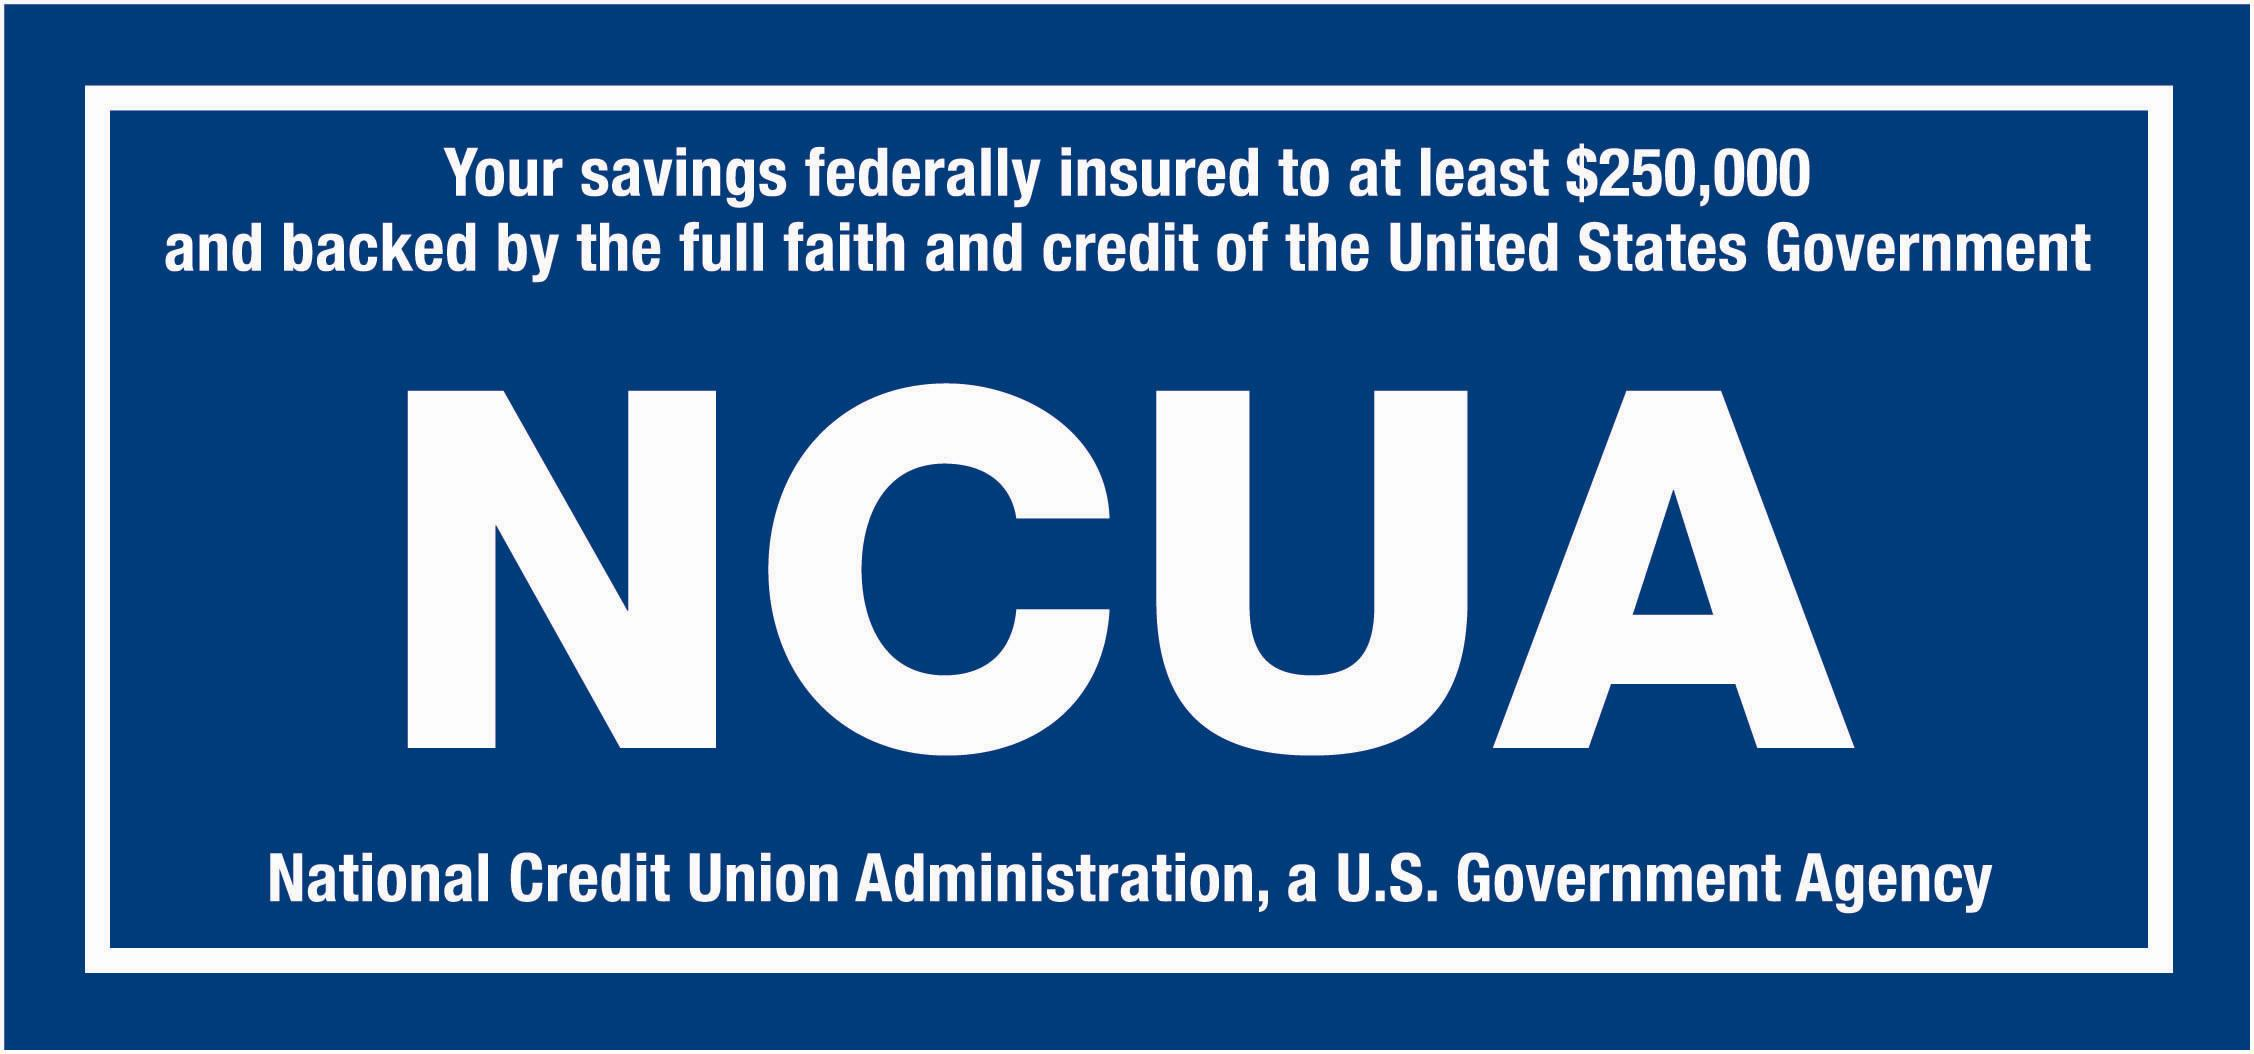 Your savings federally insured to at least $250,000 and backed by the full faith and credit of the United States Government.  NUCA - National Credit Union Administration, a U.S. Government Agency.